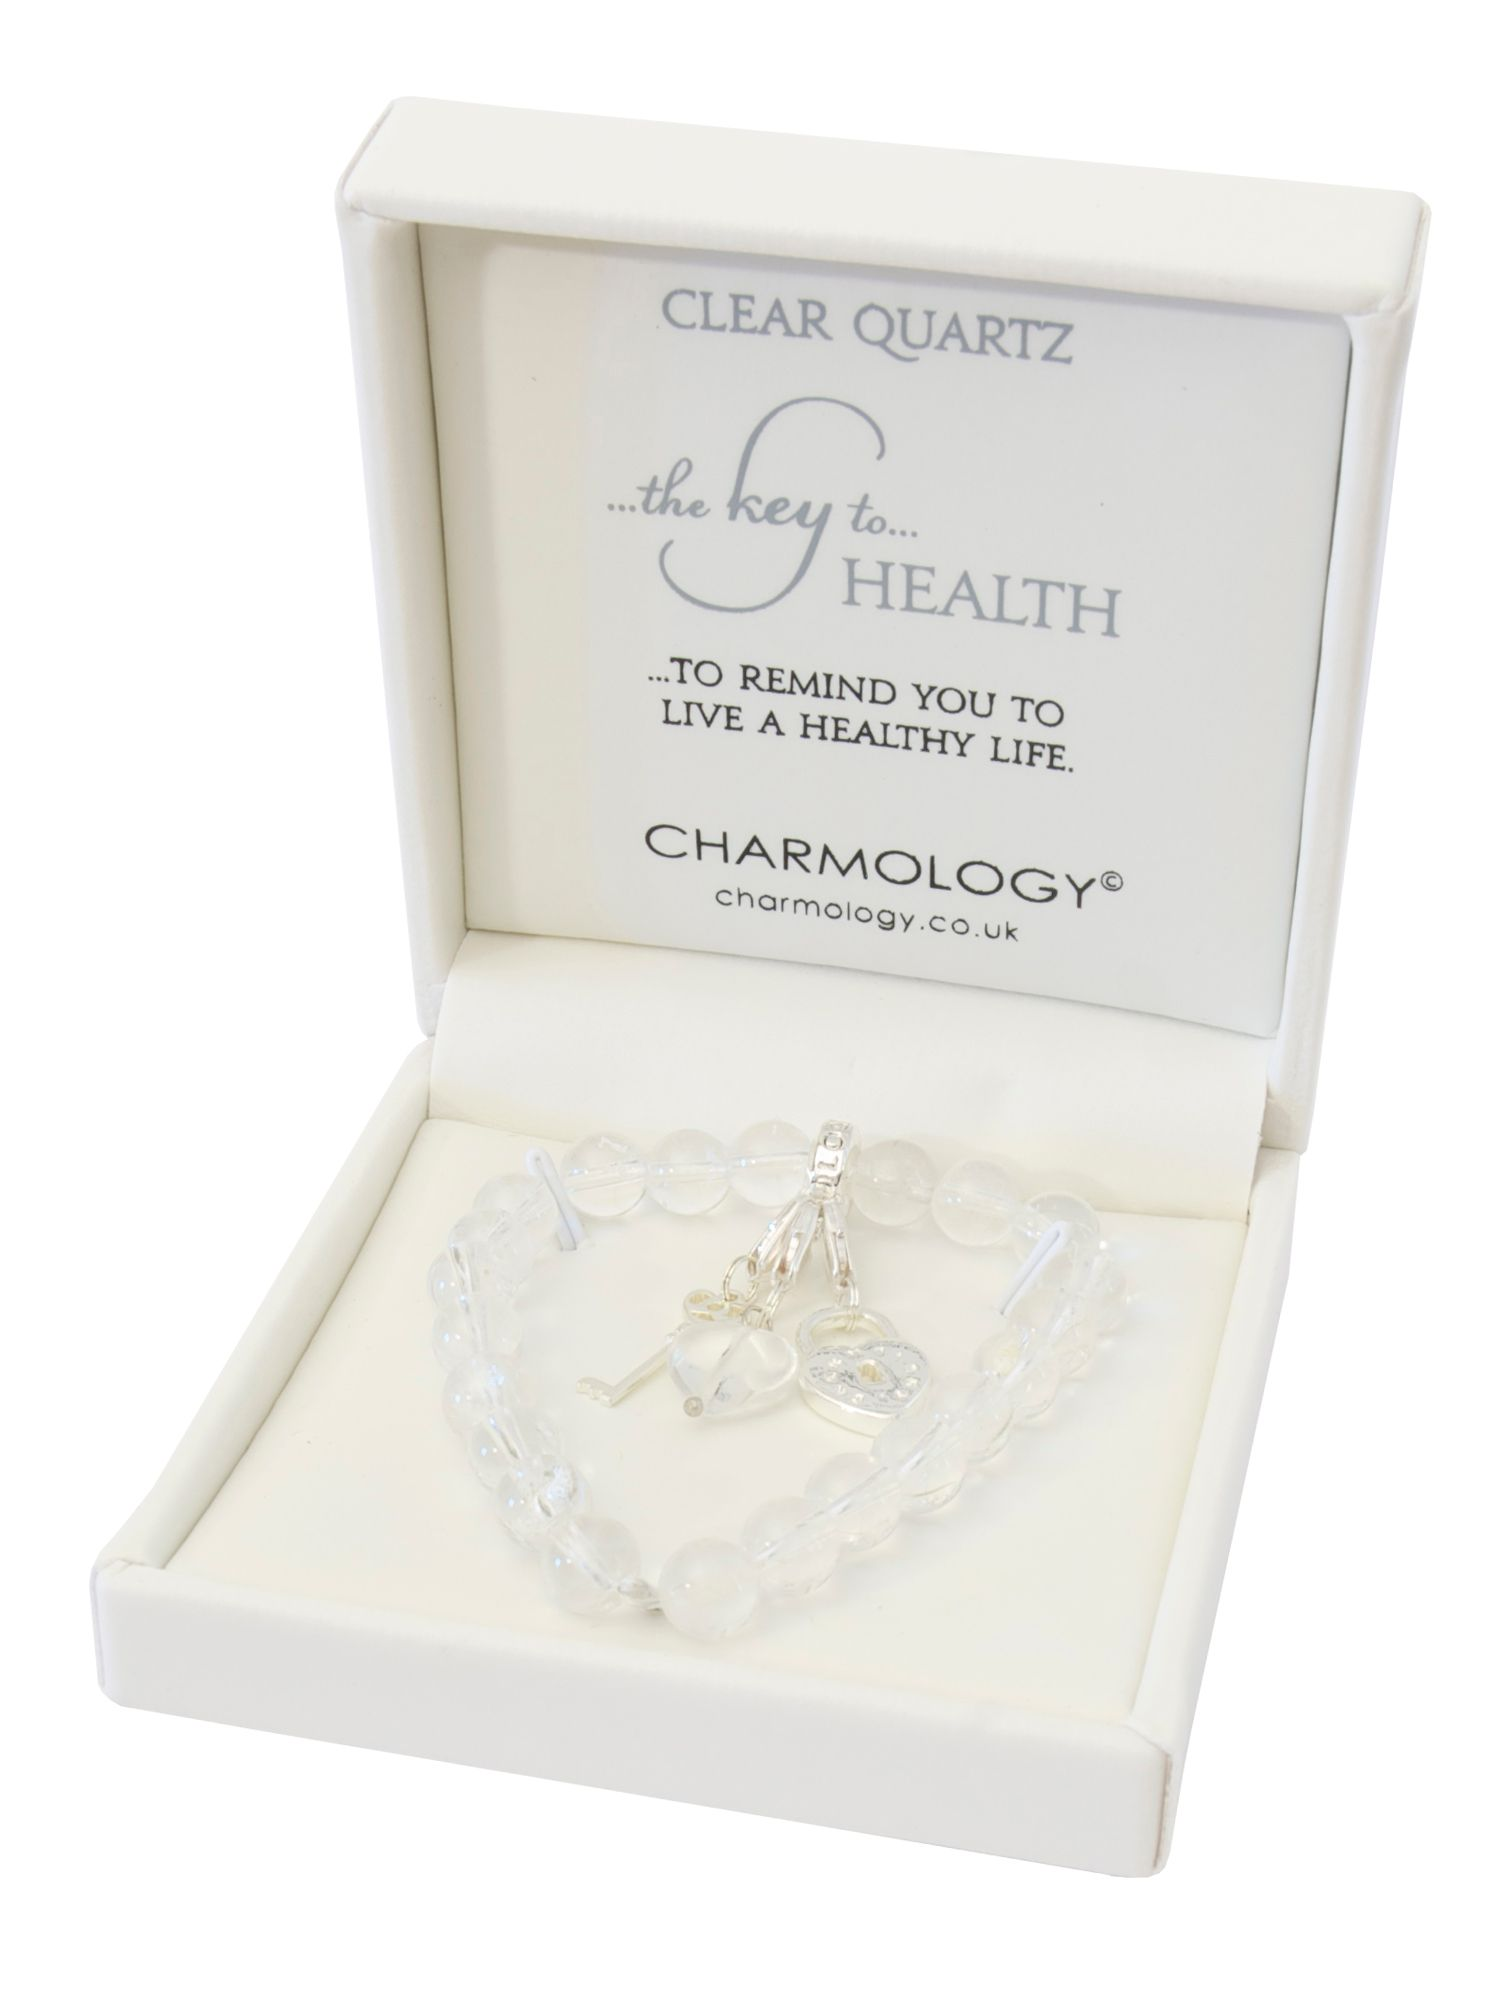 Charmology key to health quartz charm bracelet